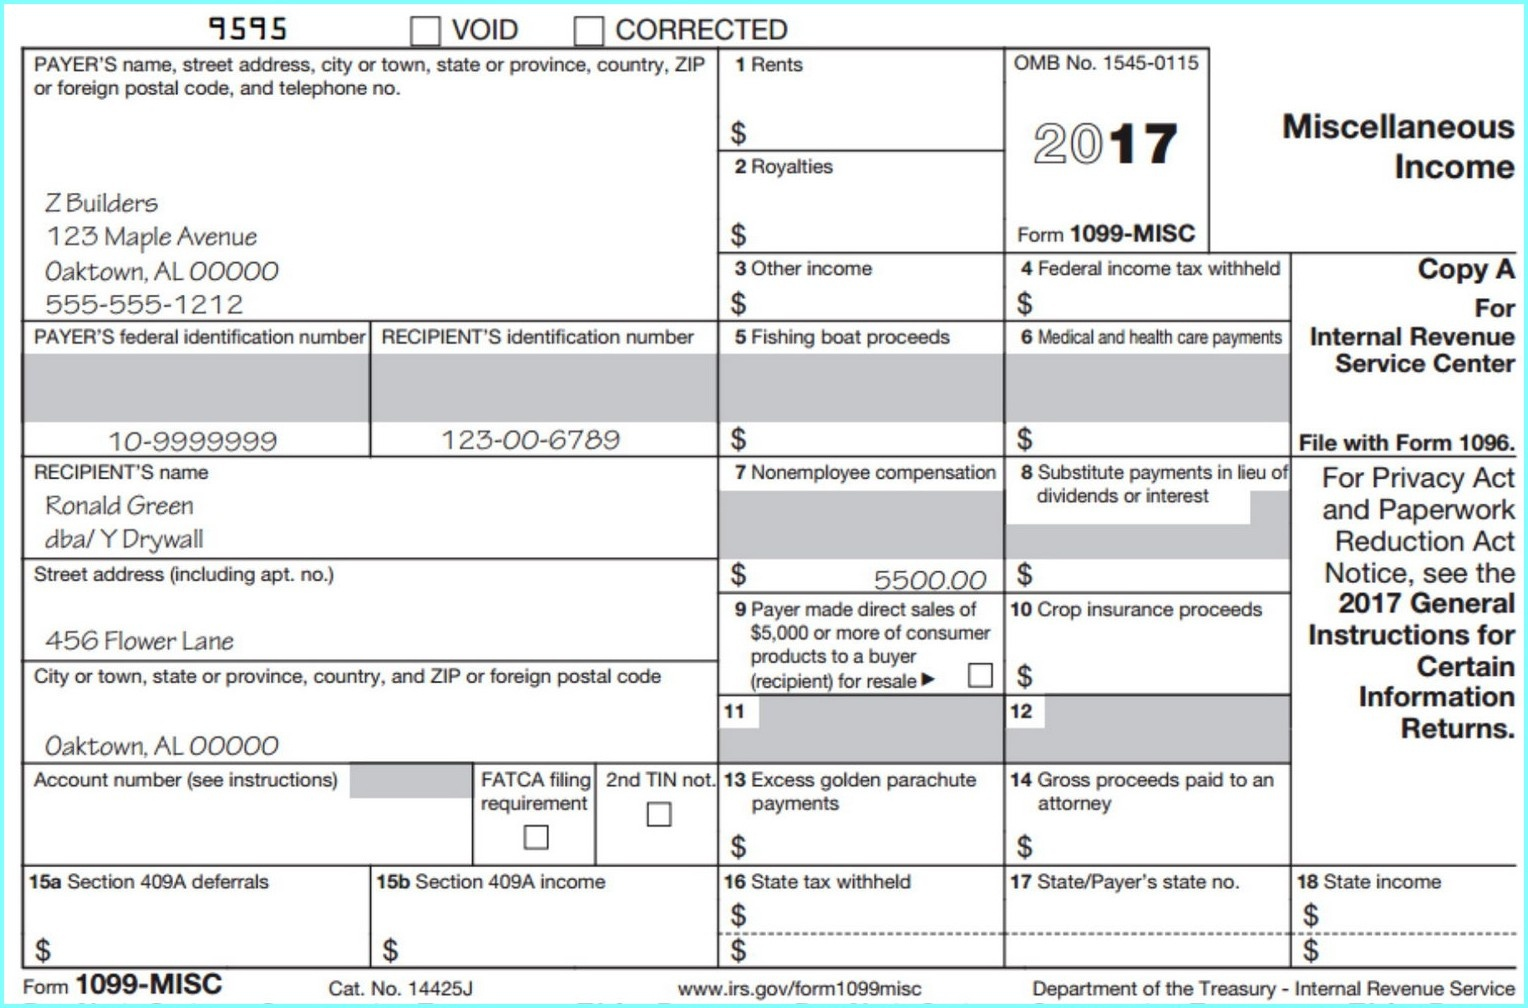 Printable 1099 Form 2017 Misc - Form : Resume Examples #djqlelg4Kw - Free Printable 1099 Form 2016